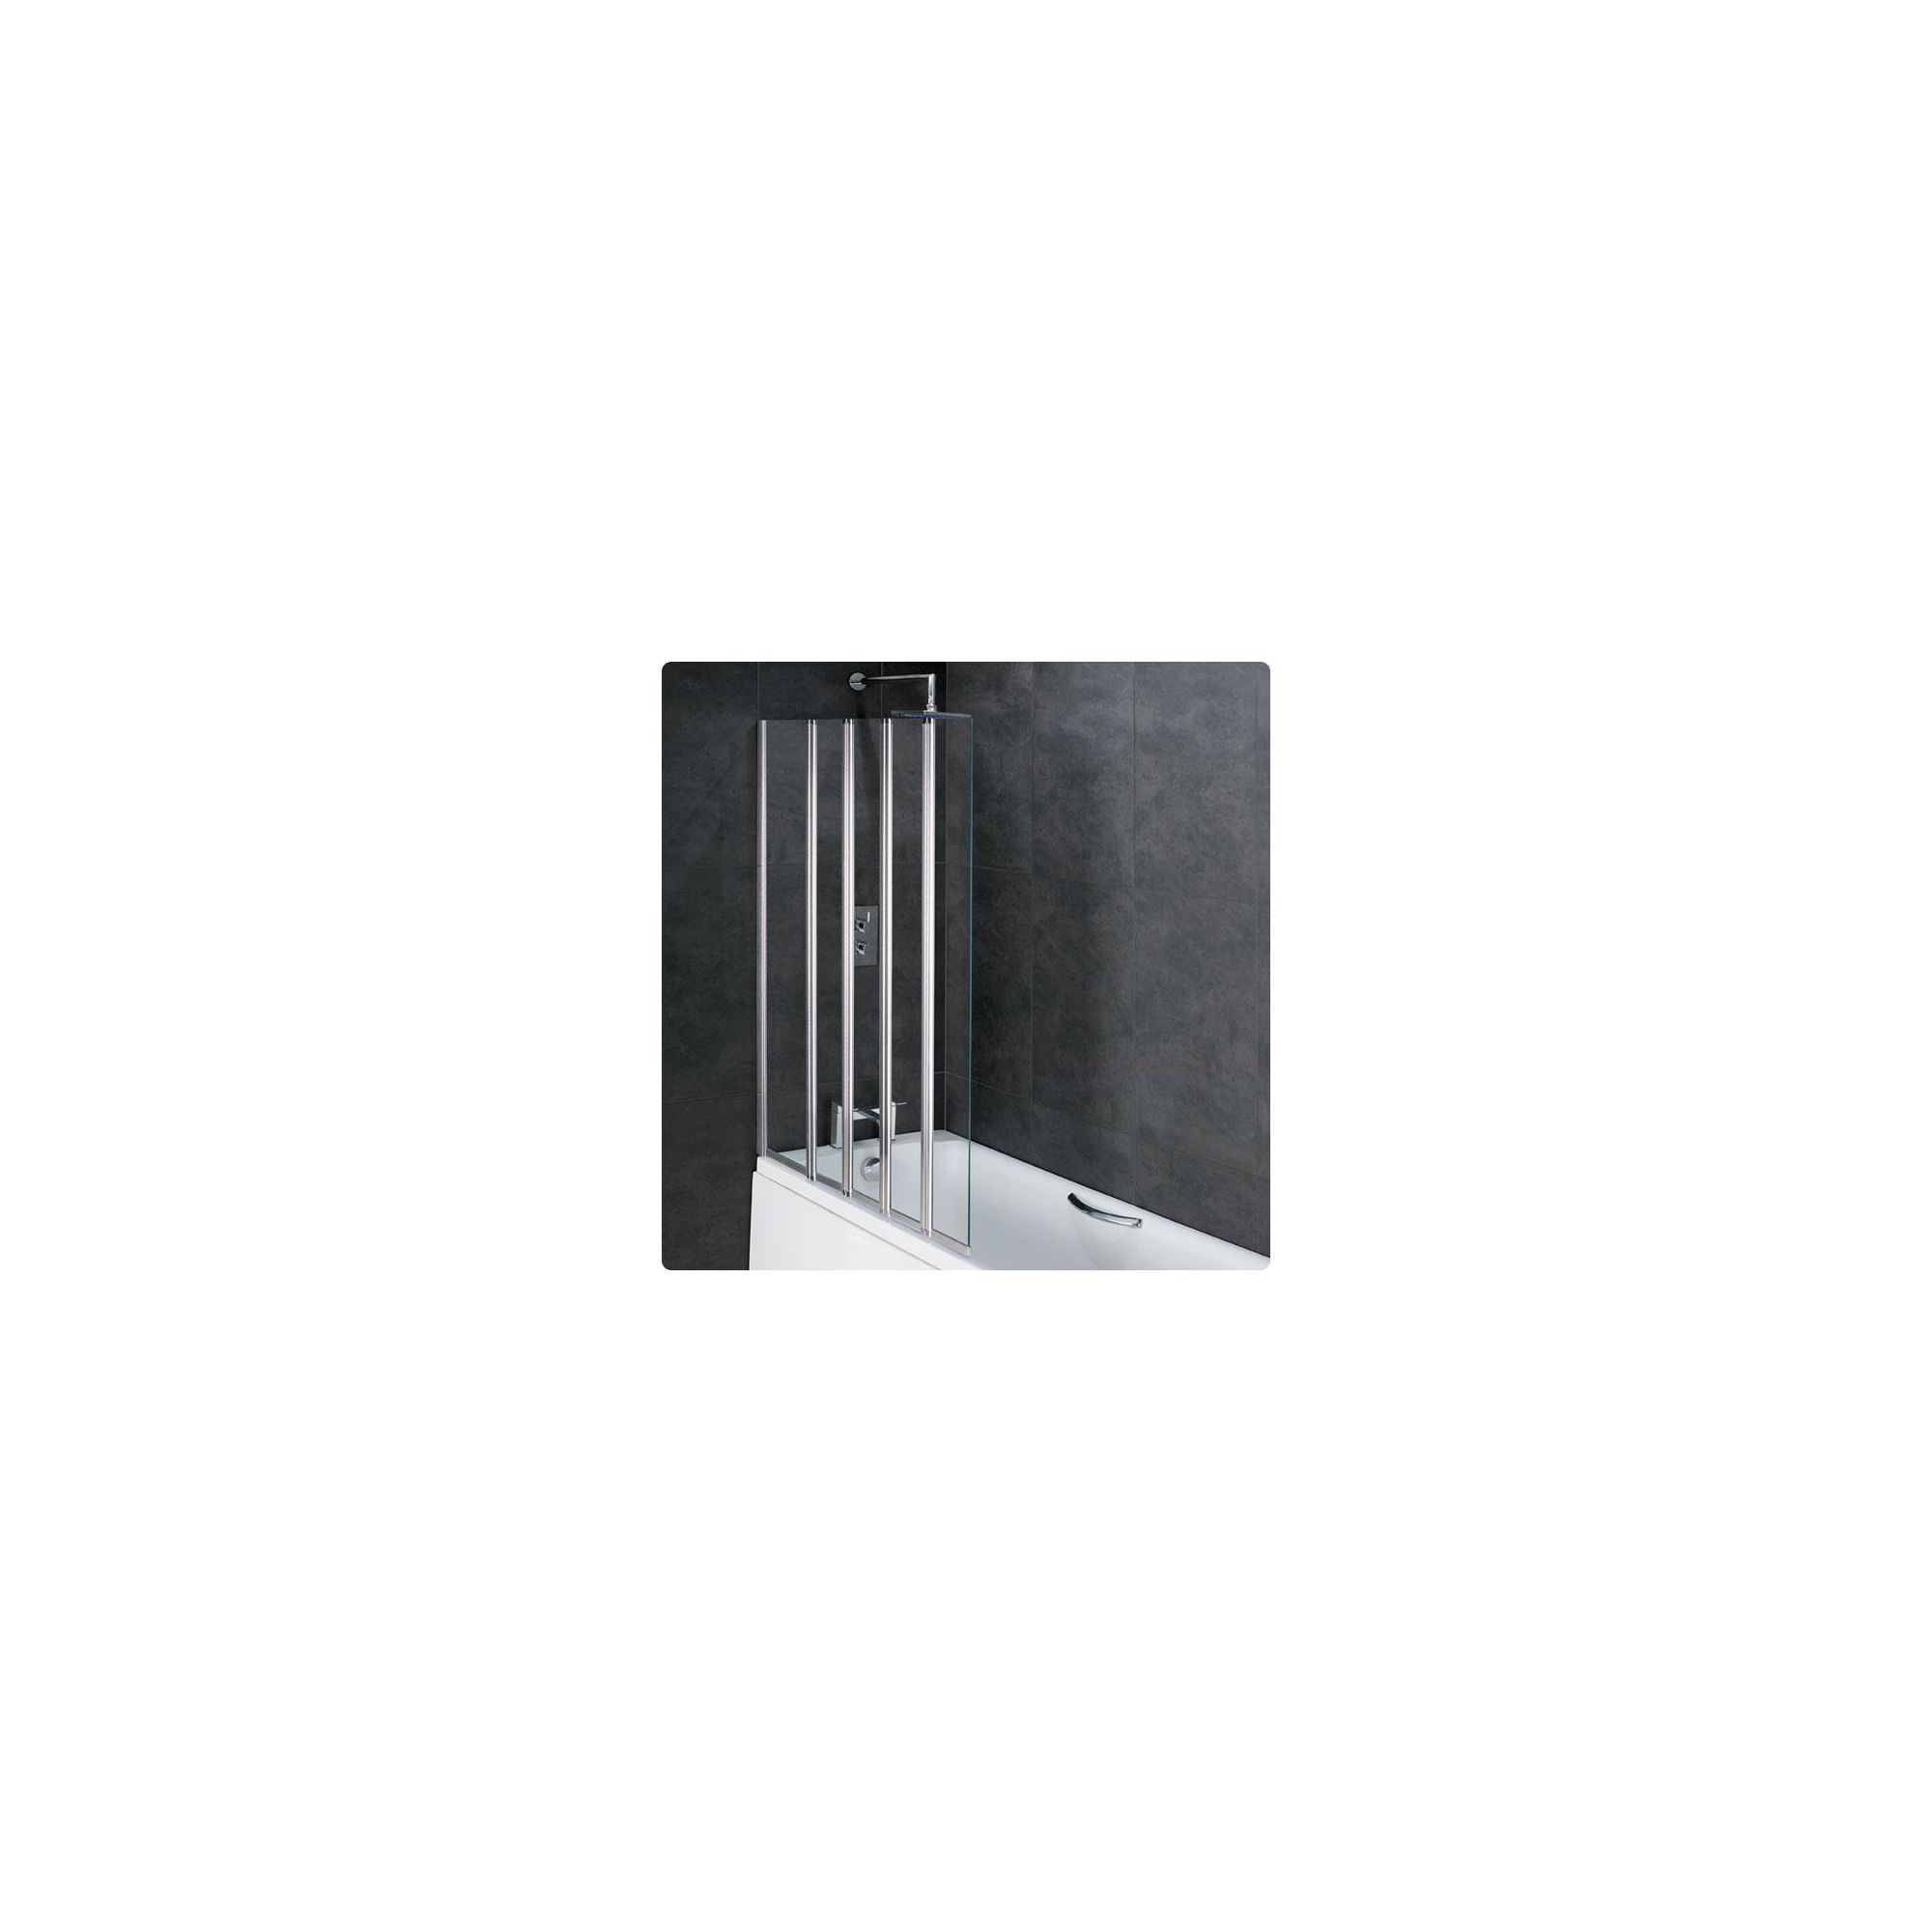 Duchy ROSETTA Folding Bath Screen 1 Fixed Panel with 4 Folding Panels LEFT HANDED with Silver Profile (1250mm Wide x 1400mm High) at Tesco Direct